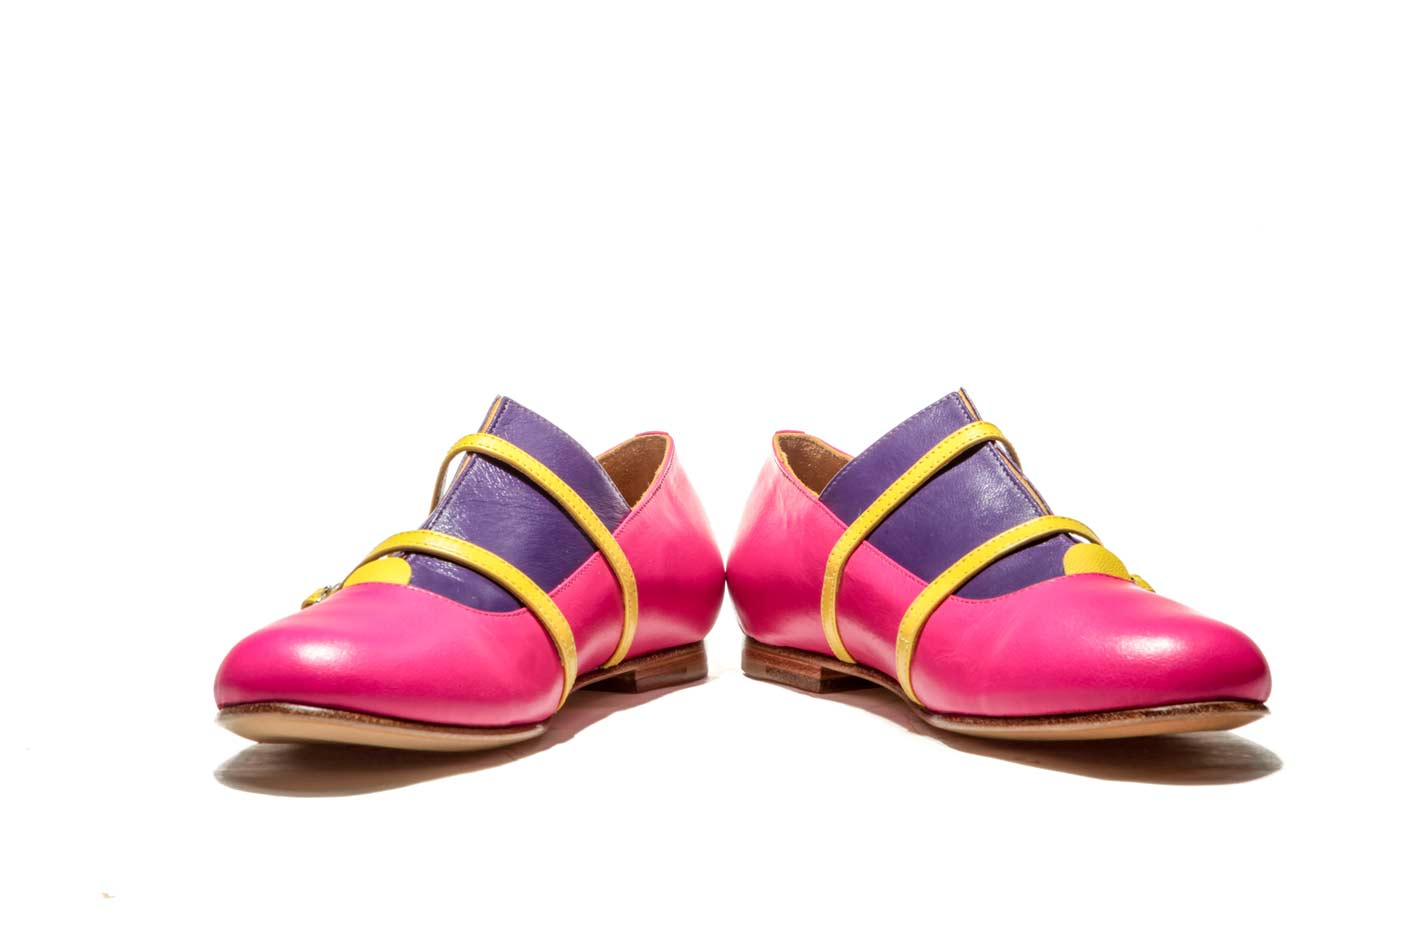 Womens monk shoes | Flats and Oxfords